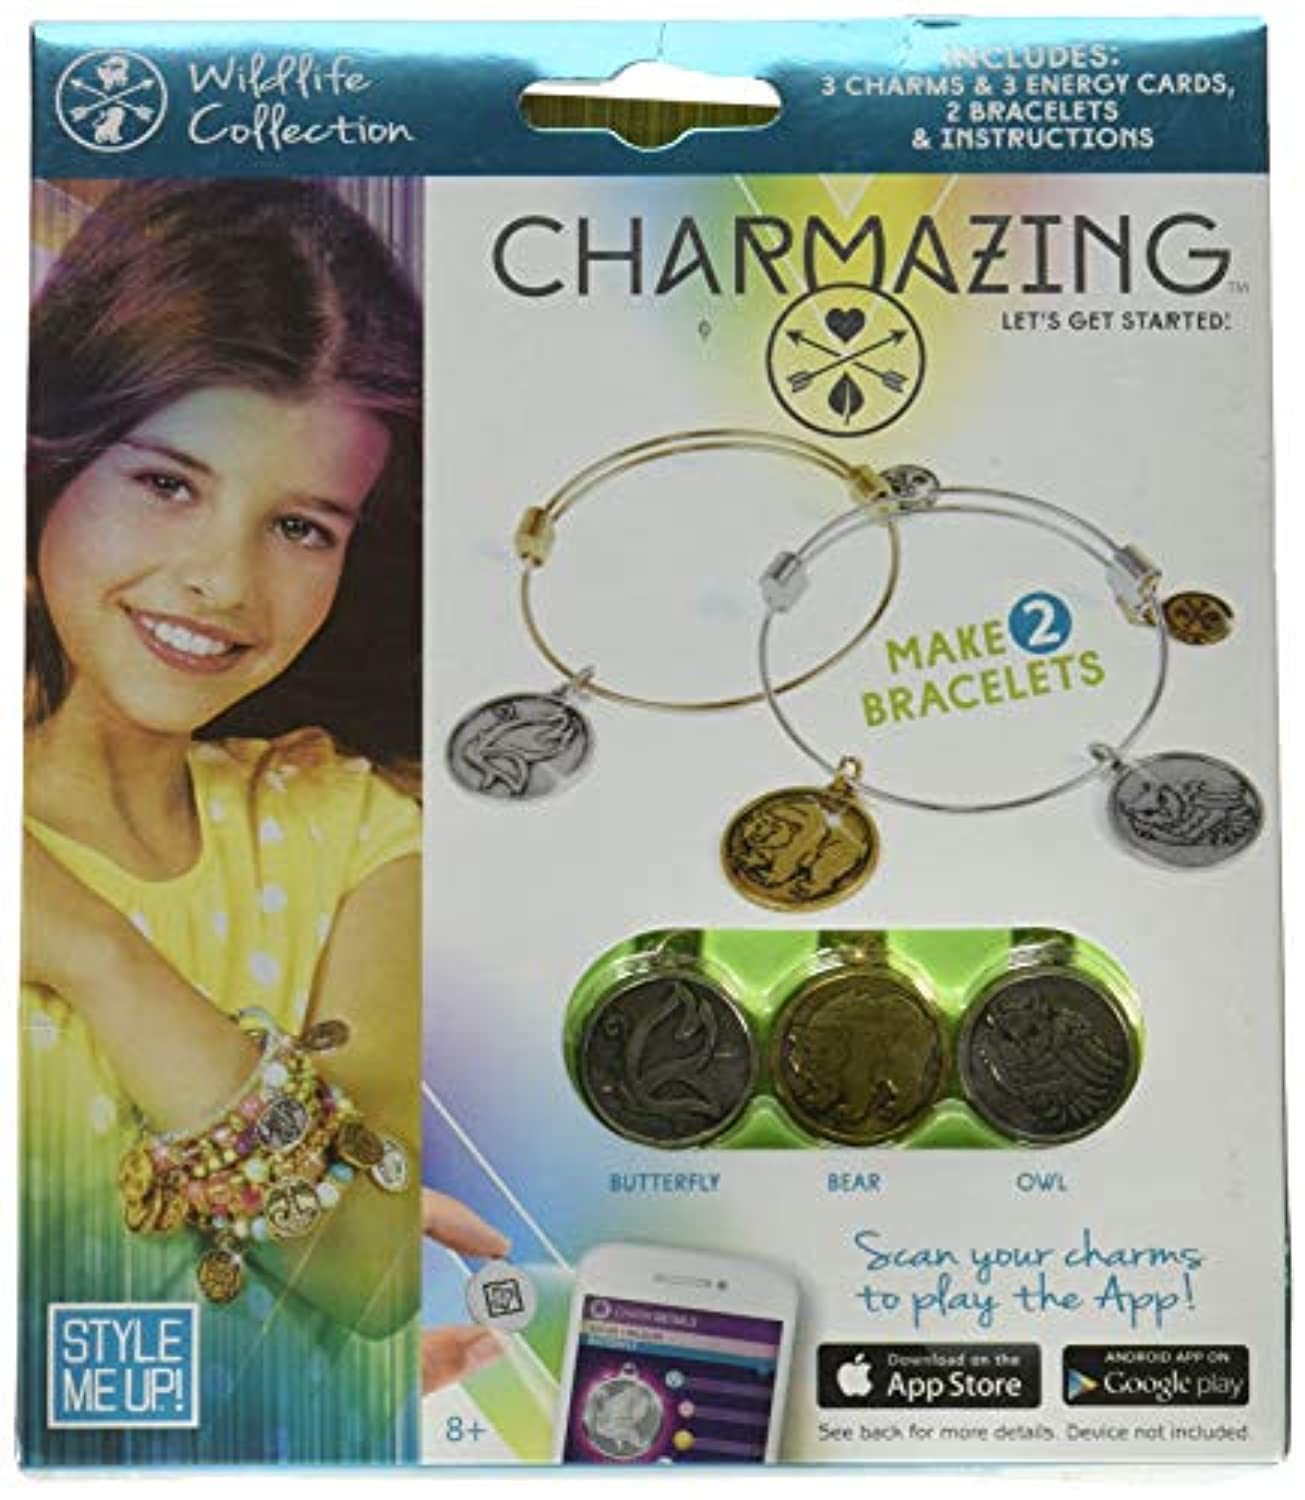 Style Me Up Charmazing - Let's Get Started - Forest Collection